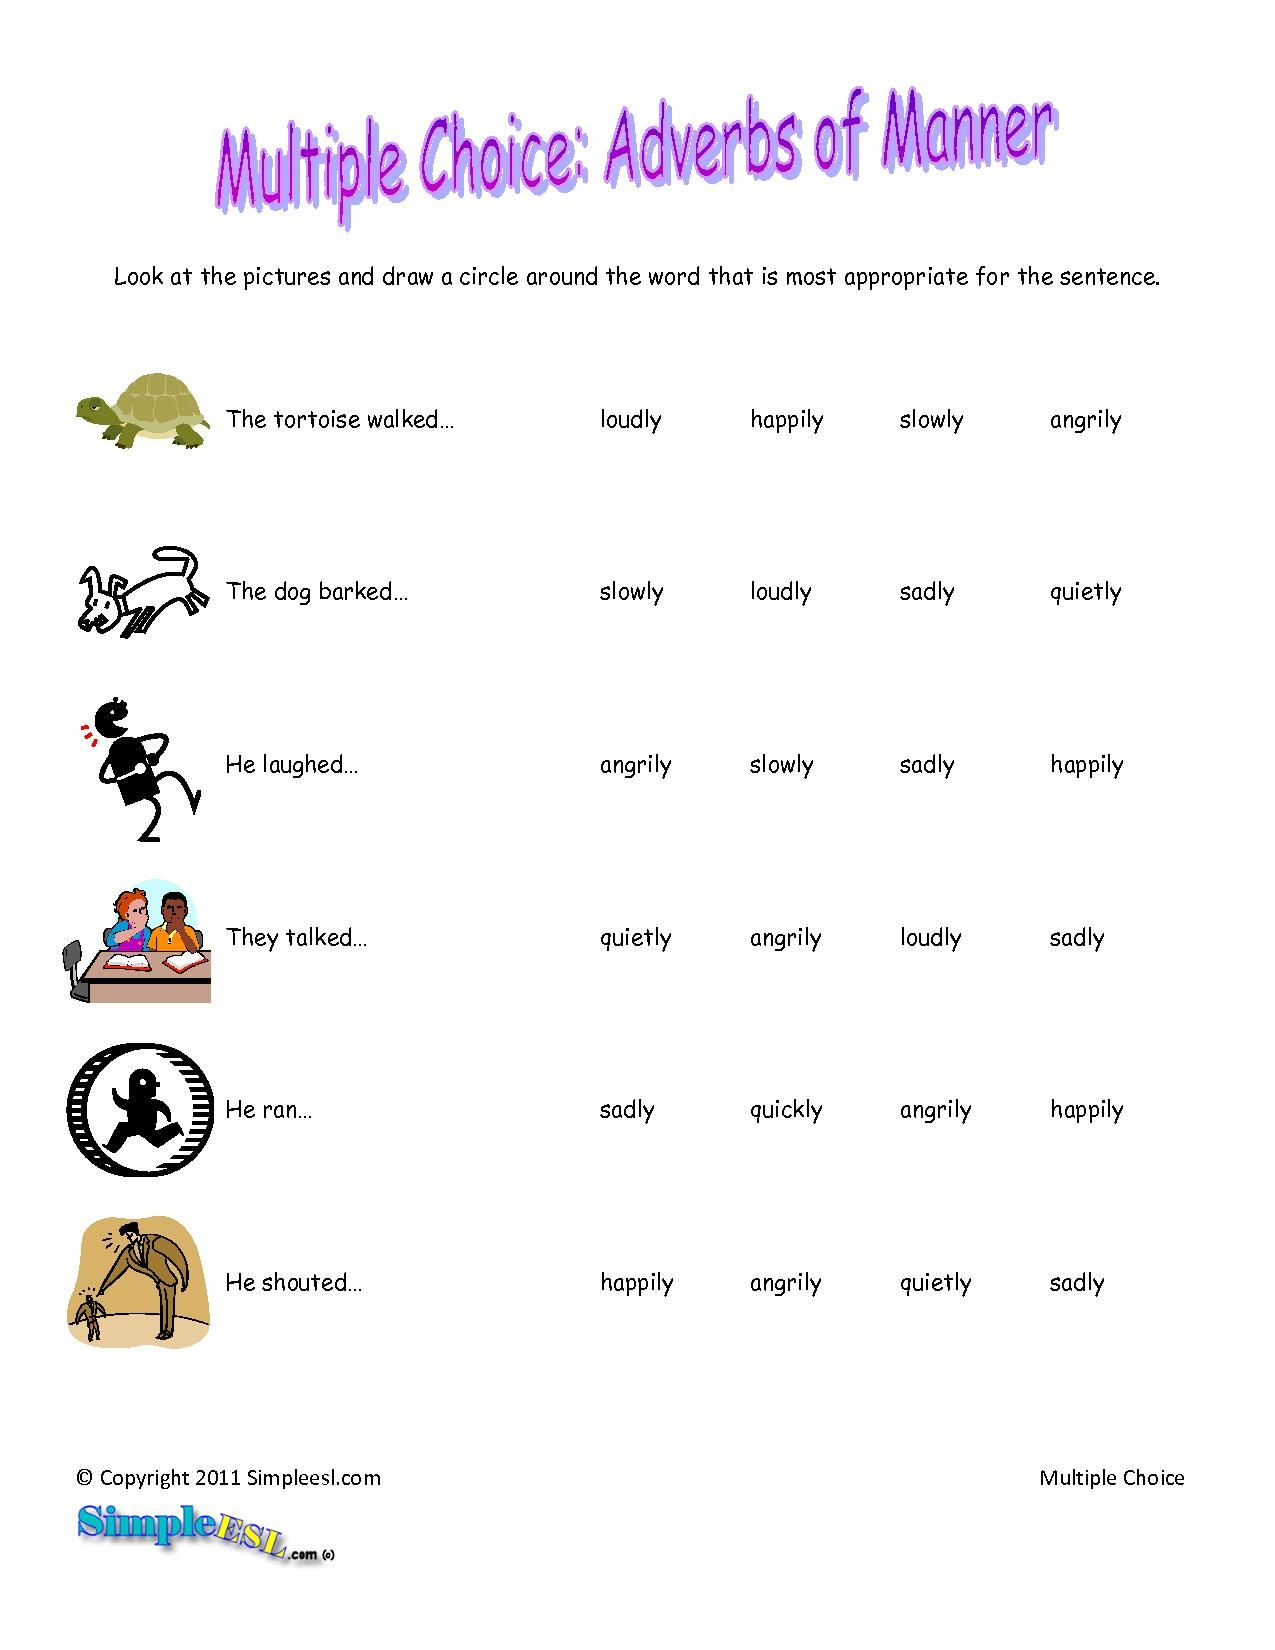 Worksheet Adverbs Grade 2 ks2 literacy teaching resources amazing adverbs adventurous of manner select the right adverb for each image beginners grammar